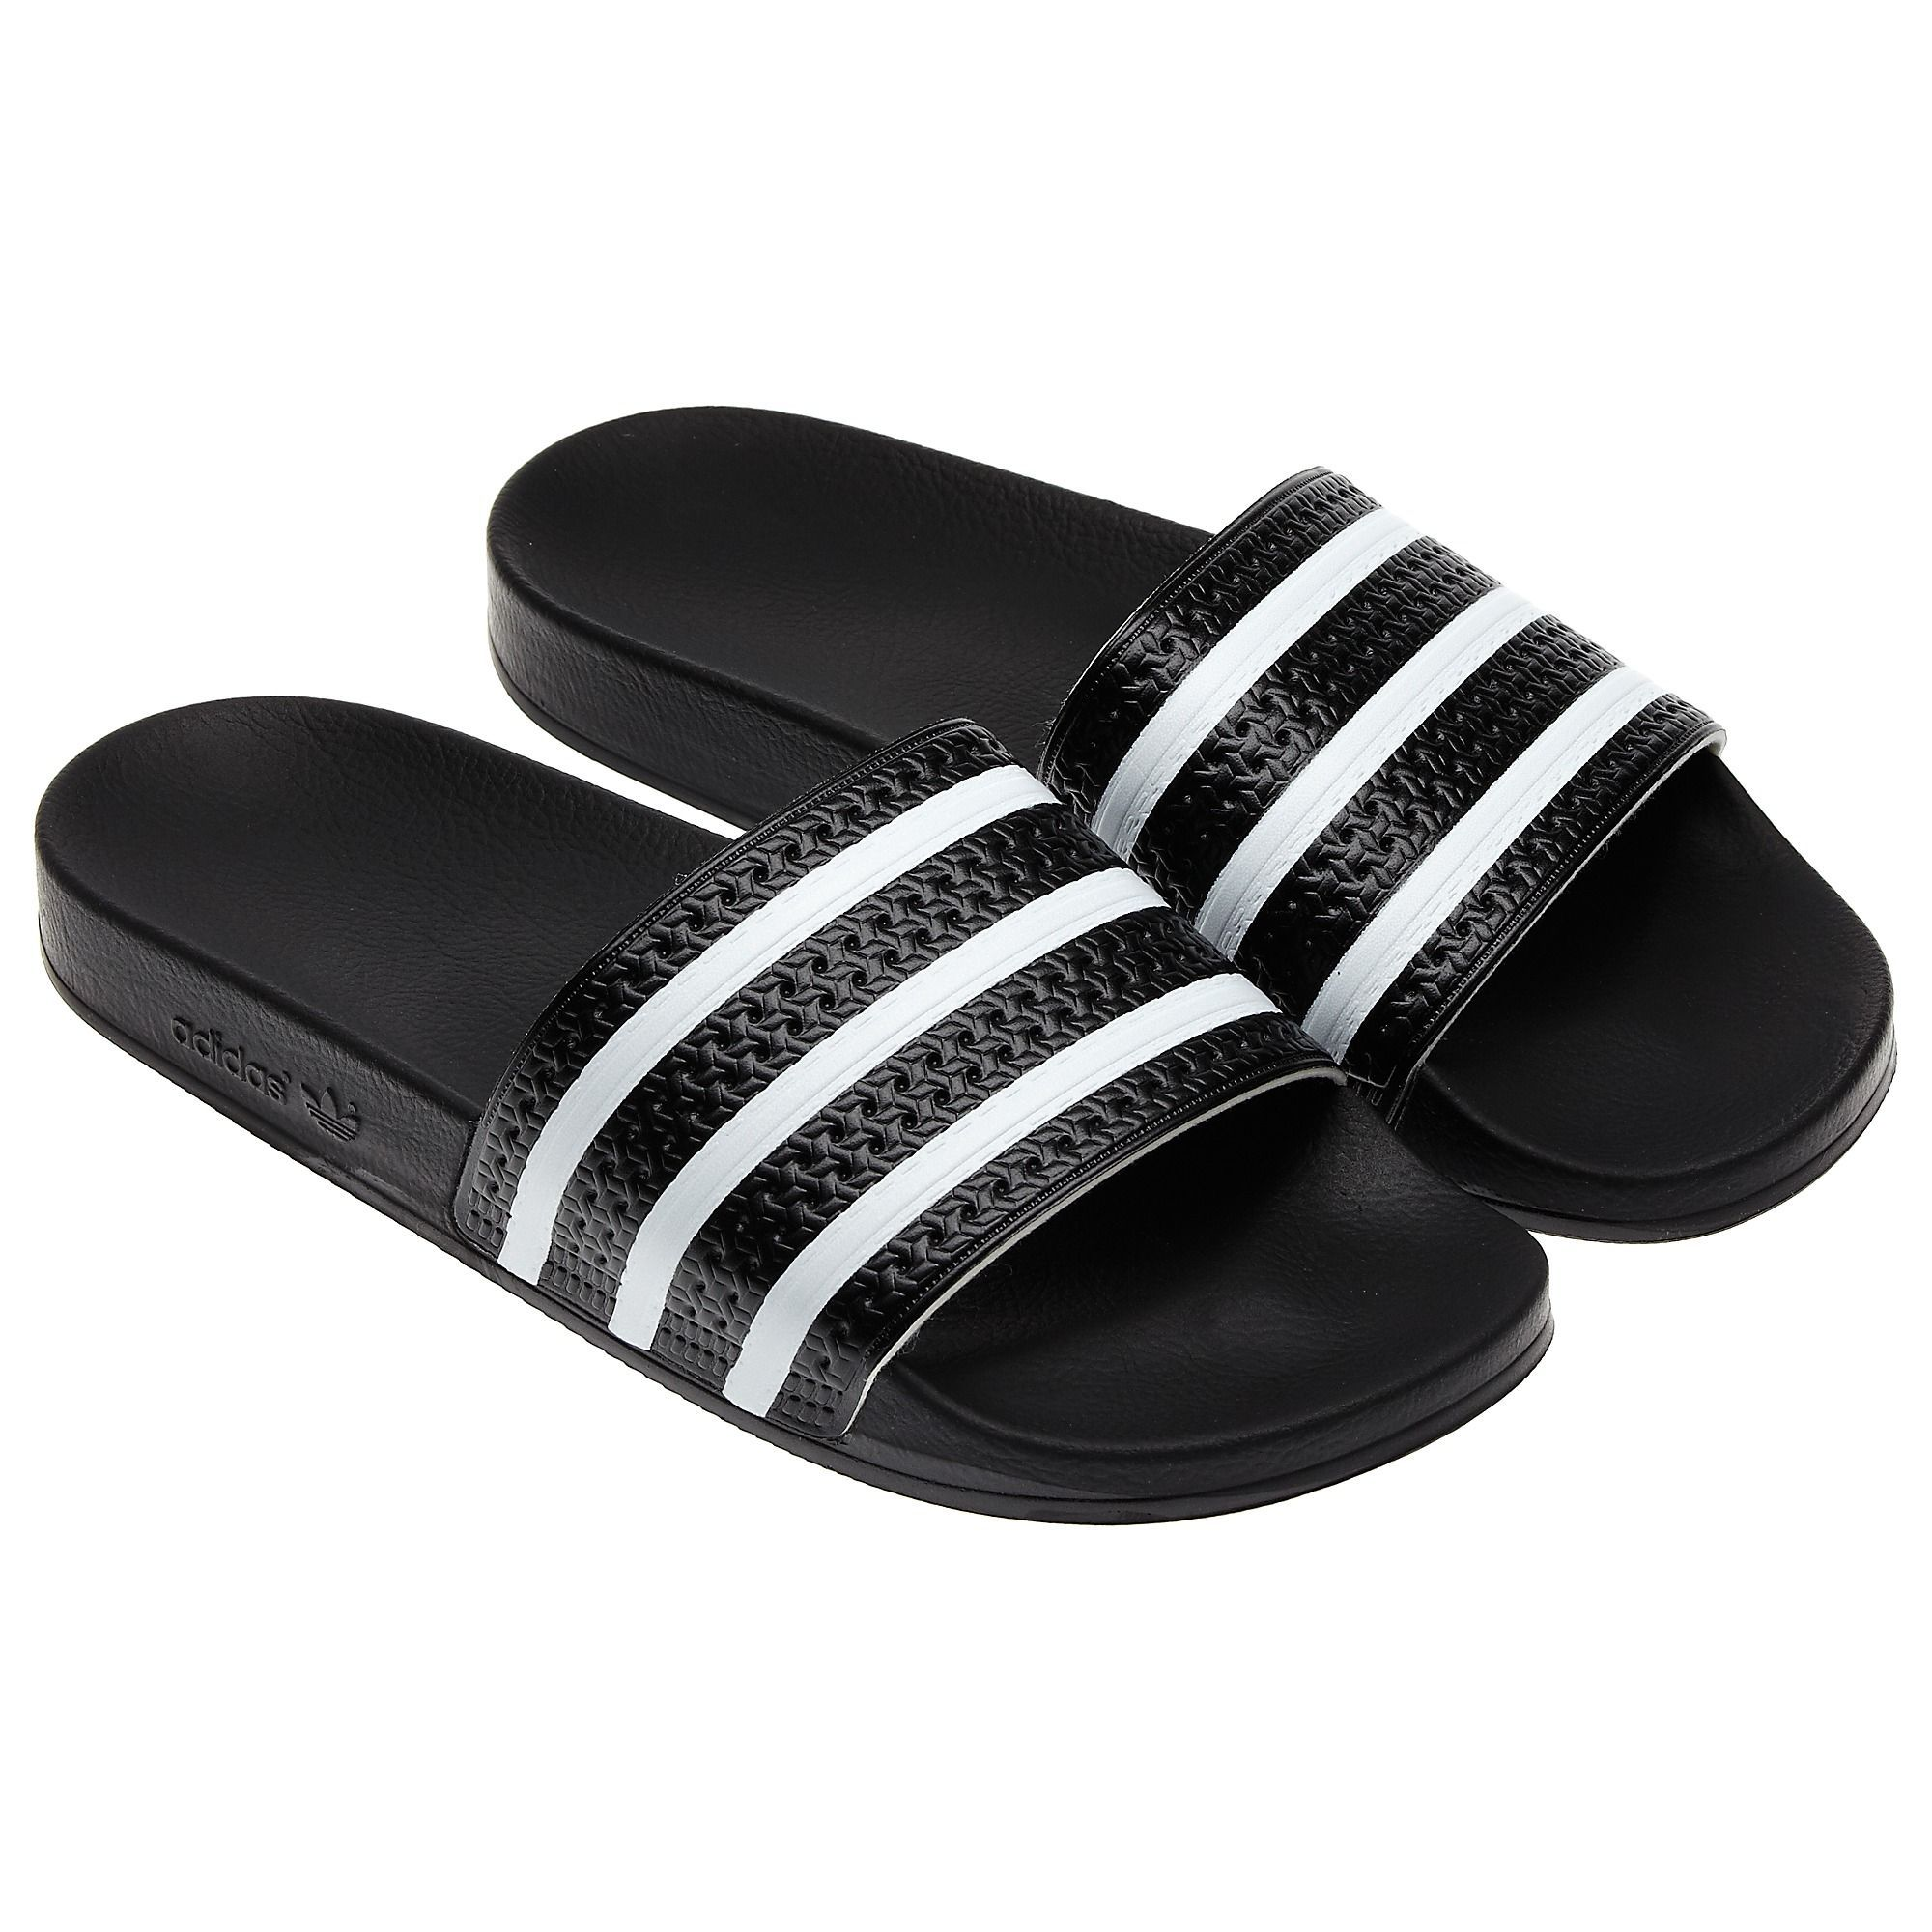 1b49eca9bc5 Adilette Slides Black 4 Mens